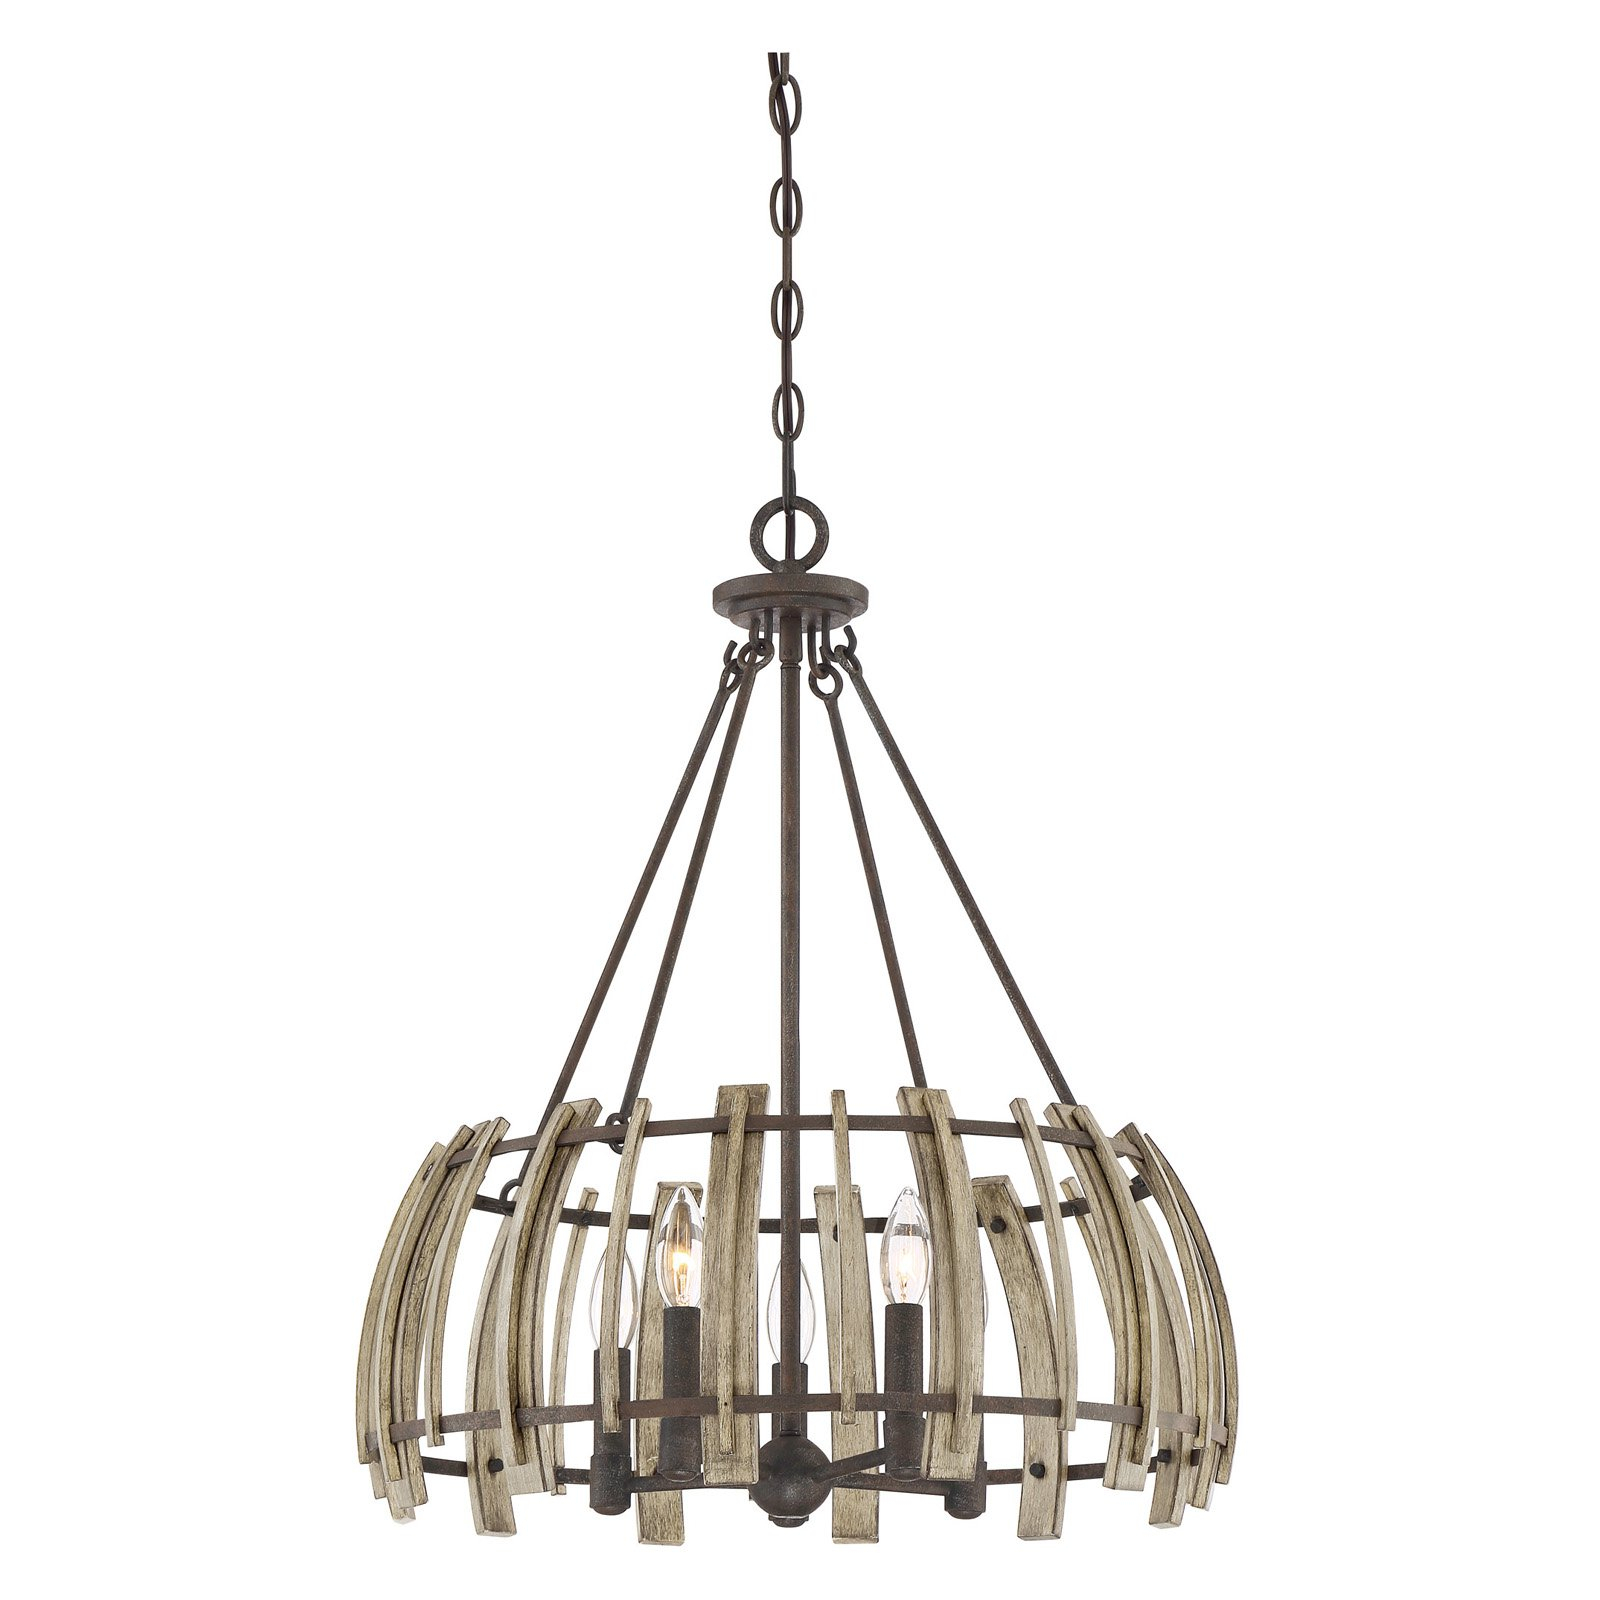 Quoizel Wood Hollow Whl2821Rk Pendant Light | Products In With Scruggs 1 Light Geometric Pendants (View 21 of 30)